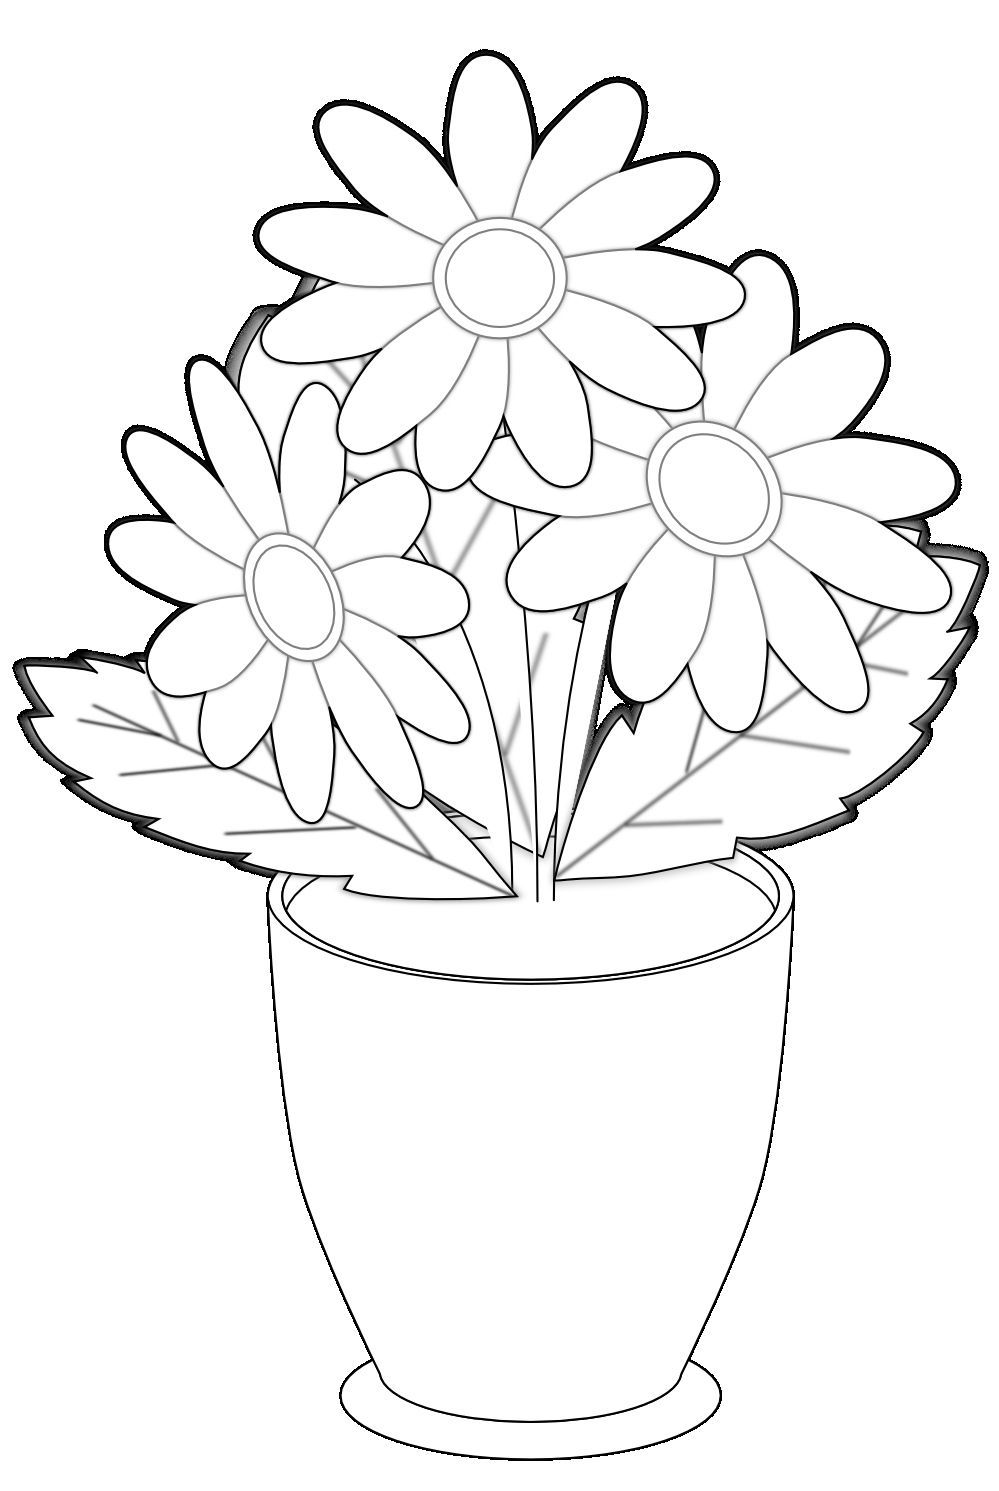 Black and white flowers in a vase clipart